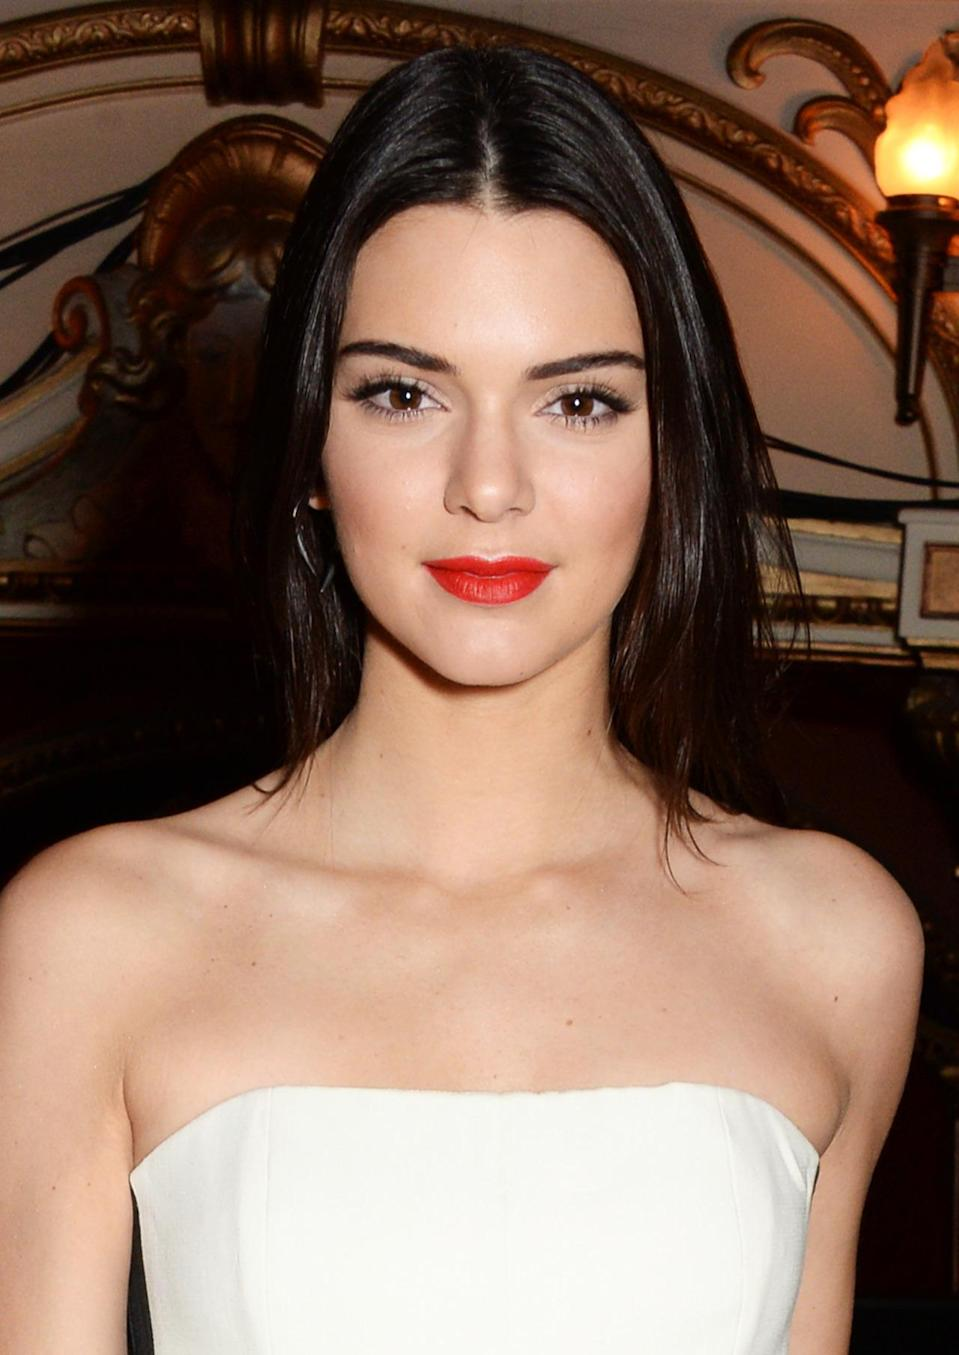 <p>At a reception for the British Fashion Awards in London, Jenner's simple nighttime look consisted of orange-red lipstick, light bronzer, and straightened hair. <i>(Photo: Getty Images)</i></p>